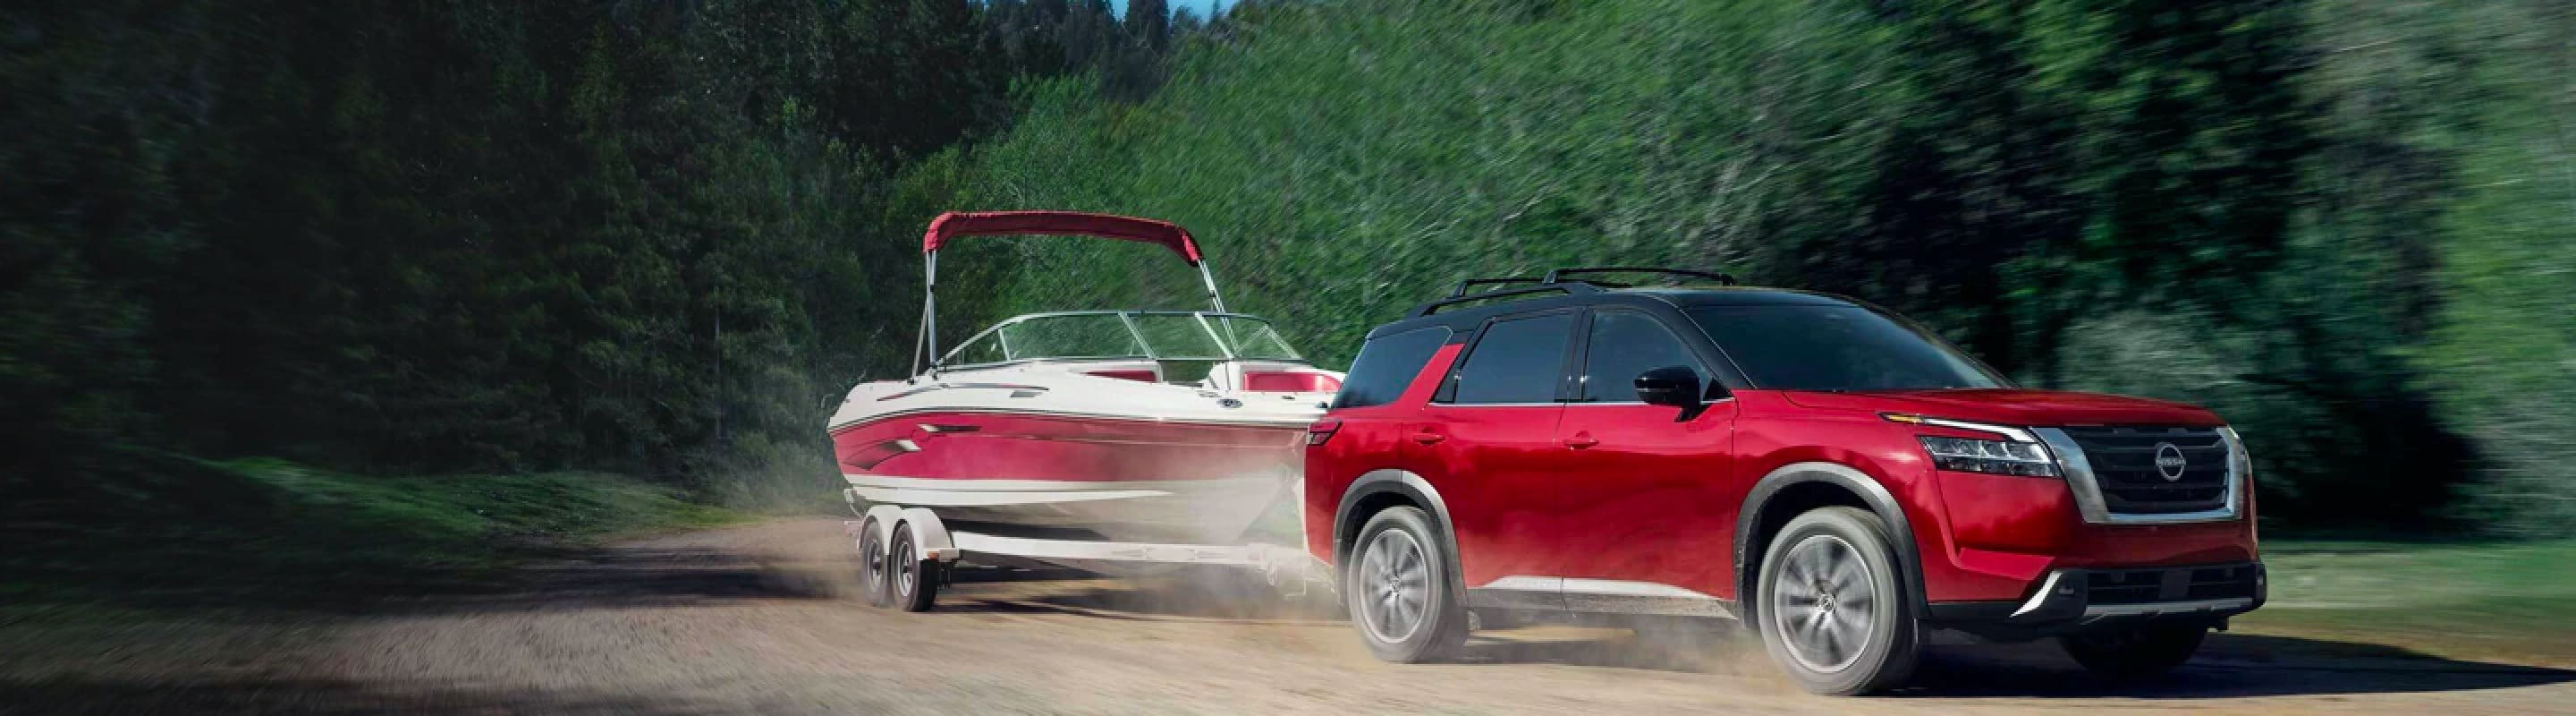 2022 Nissan Pathfinder towing a boat on a dirt road